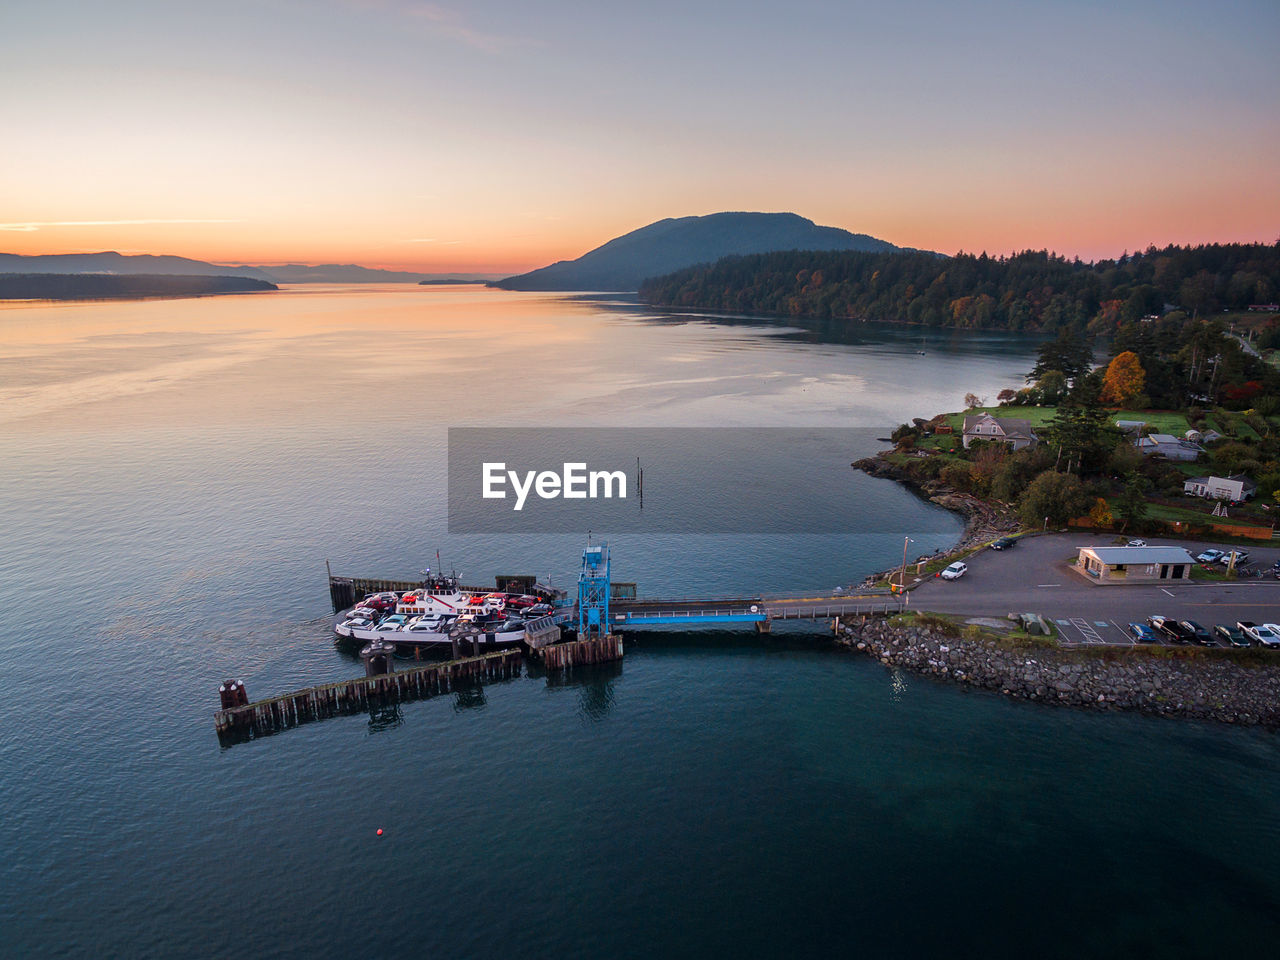 water, sky, sea, sunset, scenics - nature, transportation, architecture, beauty in nature, nautical vessel, nature, waterfront, built structure, no people, building exterior, high angle view, mountain, cloud - sky, mode of transportation, pier, outdoors